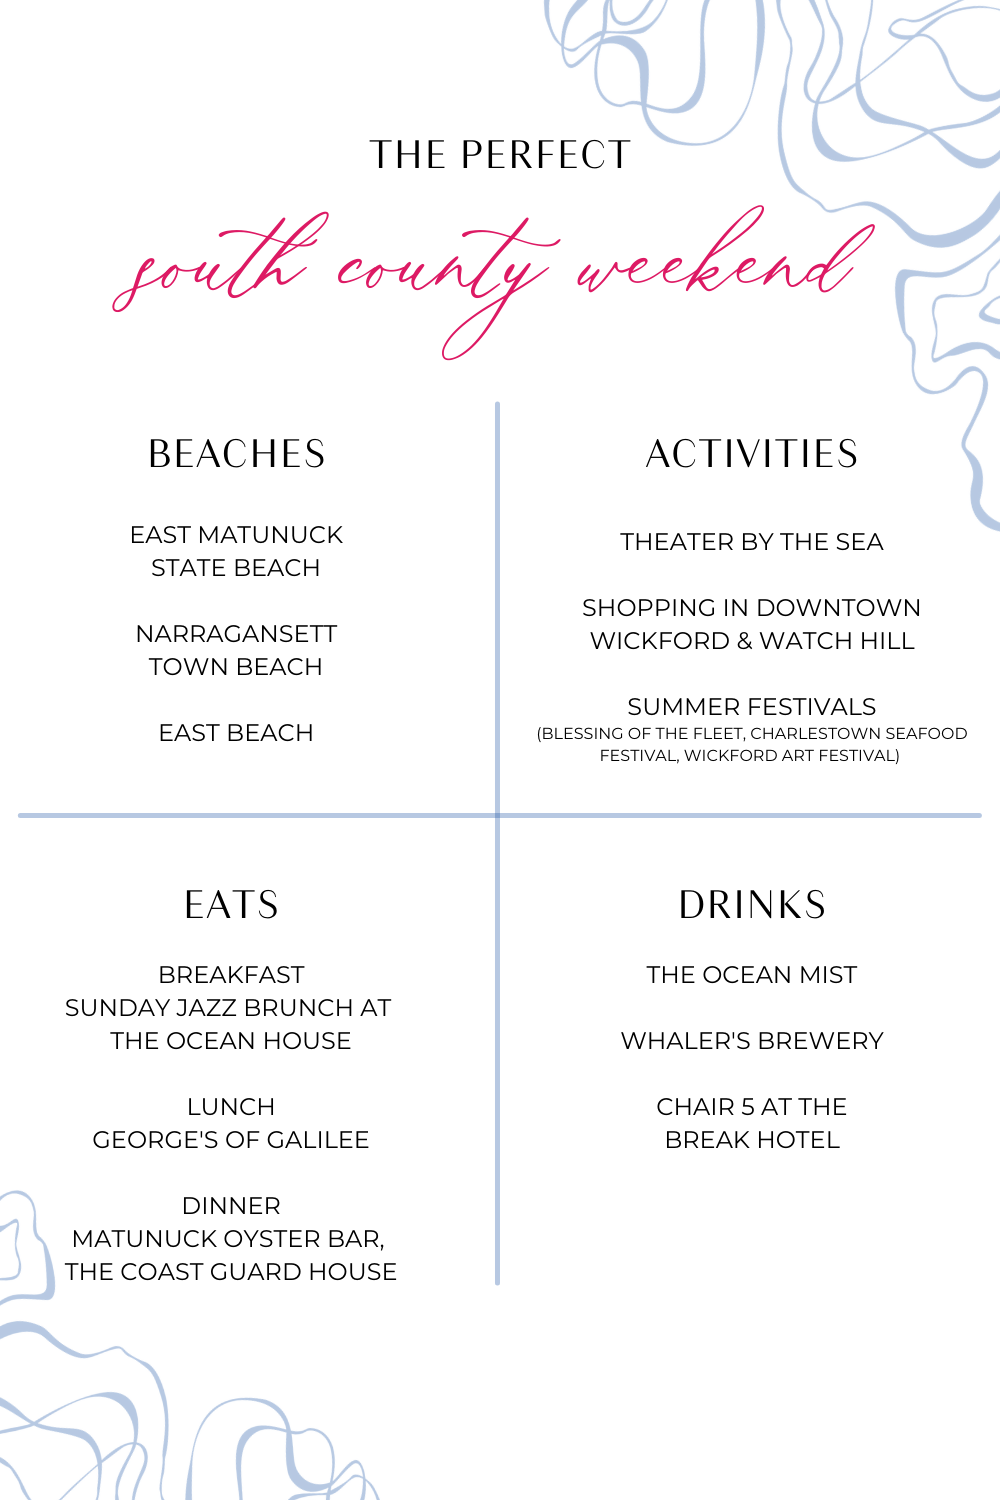 blakely interior design kingstown ri vibrant summer south county activities list beaches eats drinks